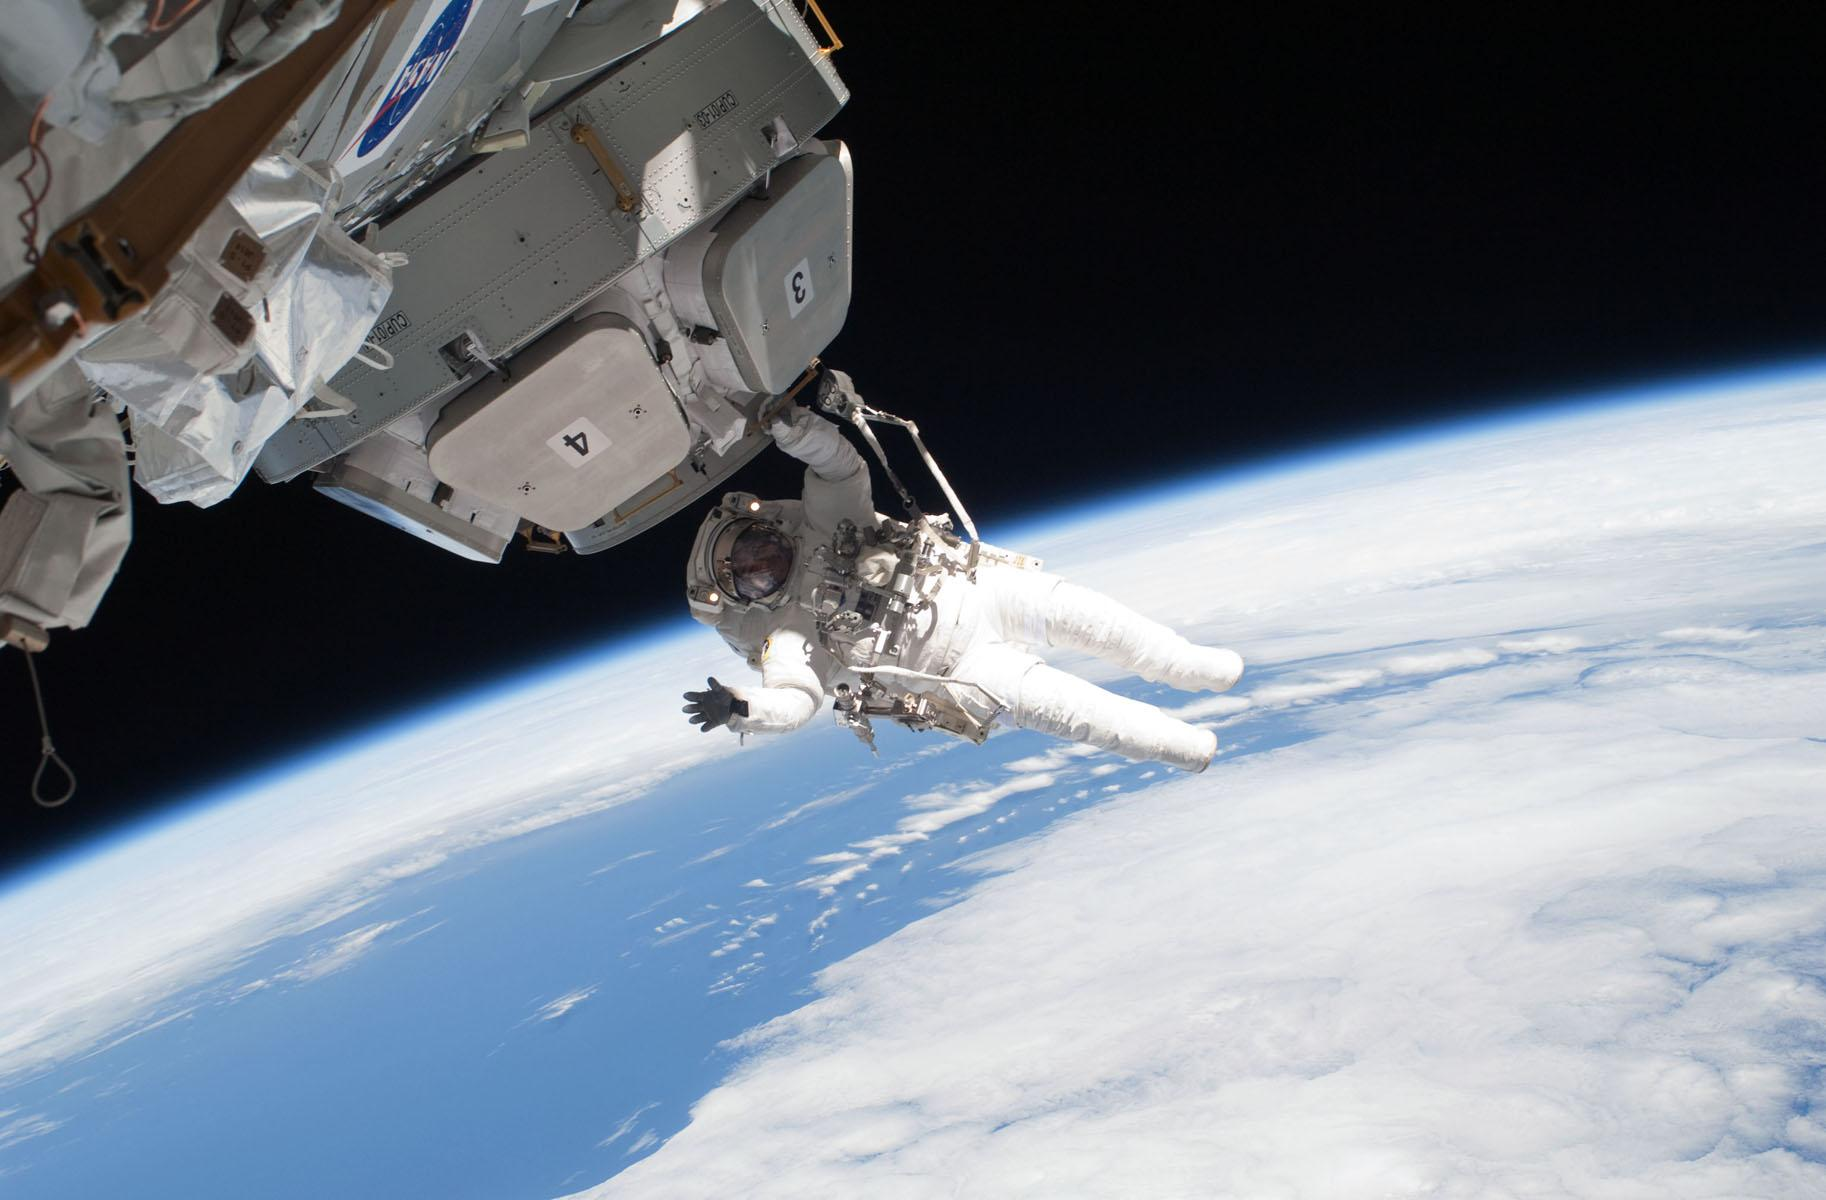 Astronaut on a space walk outside ISS